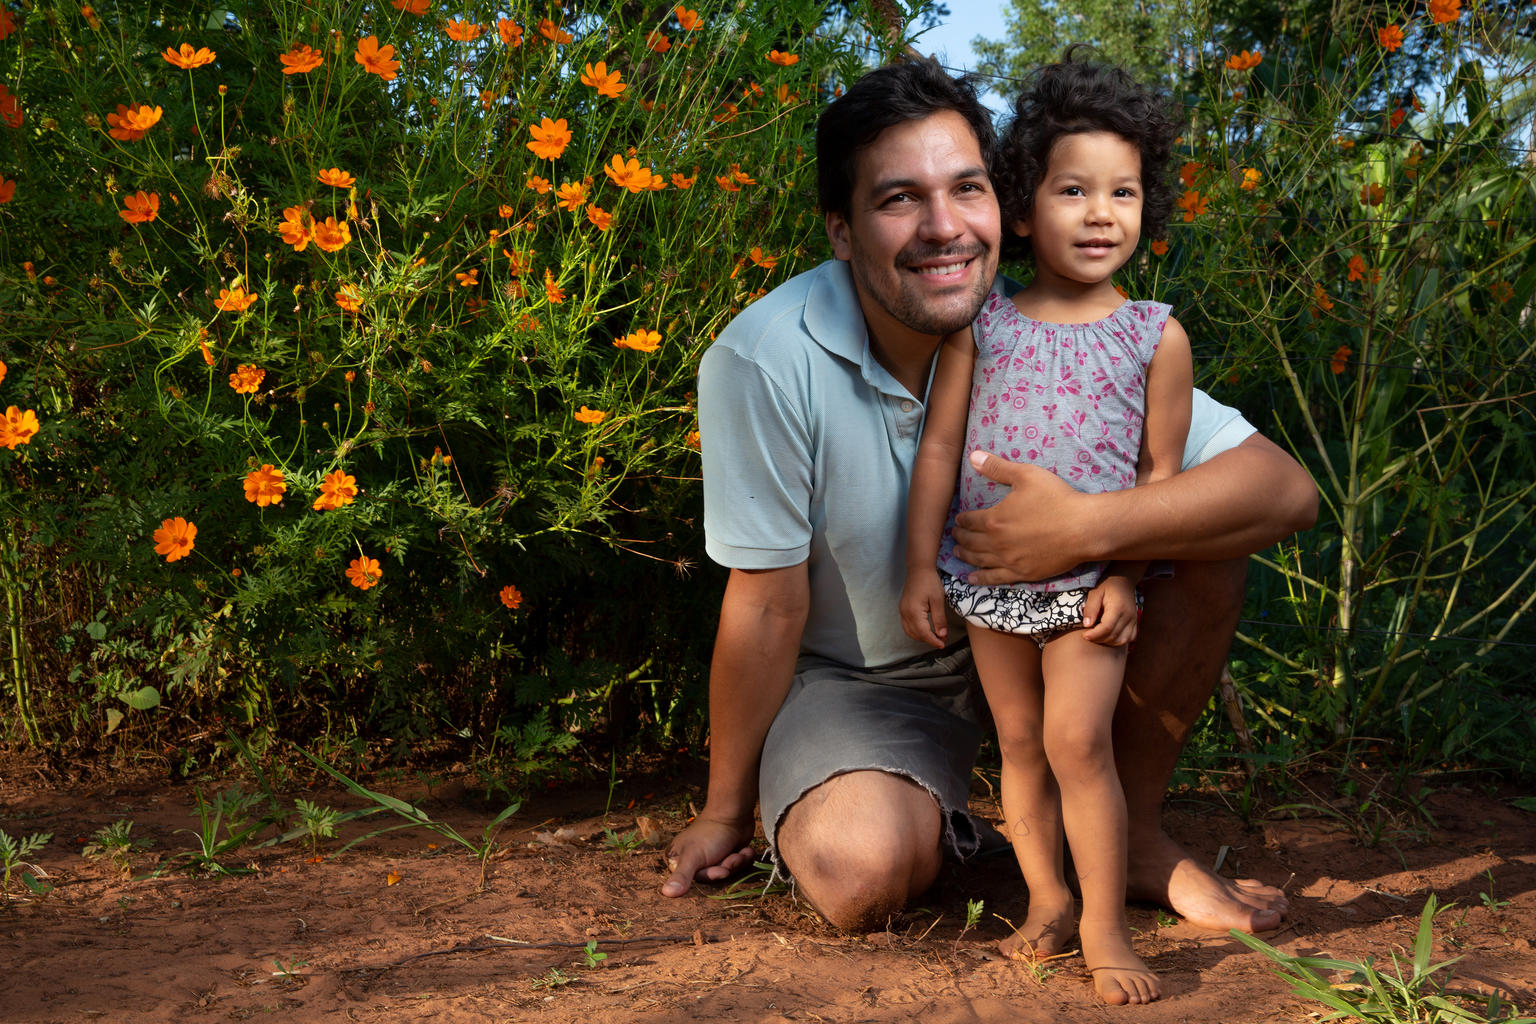 """© UNICEF/UN0312703/Sokol 